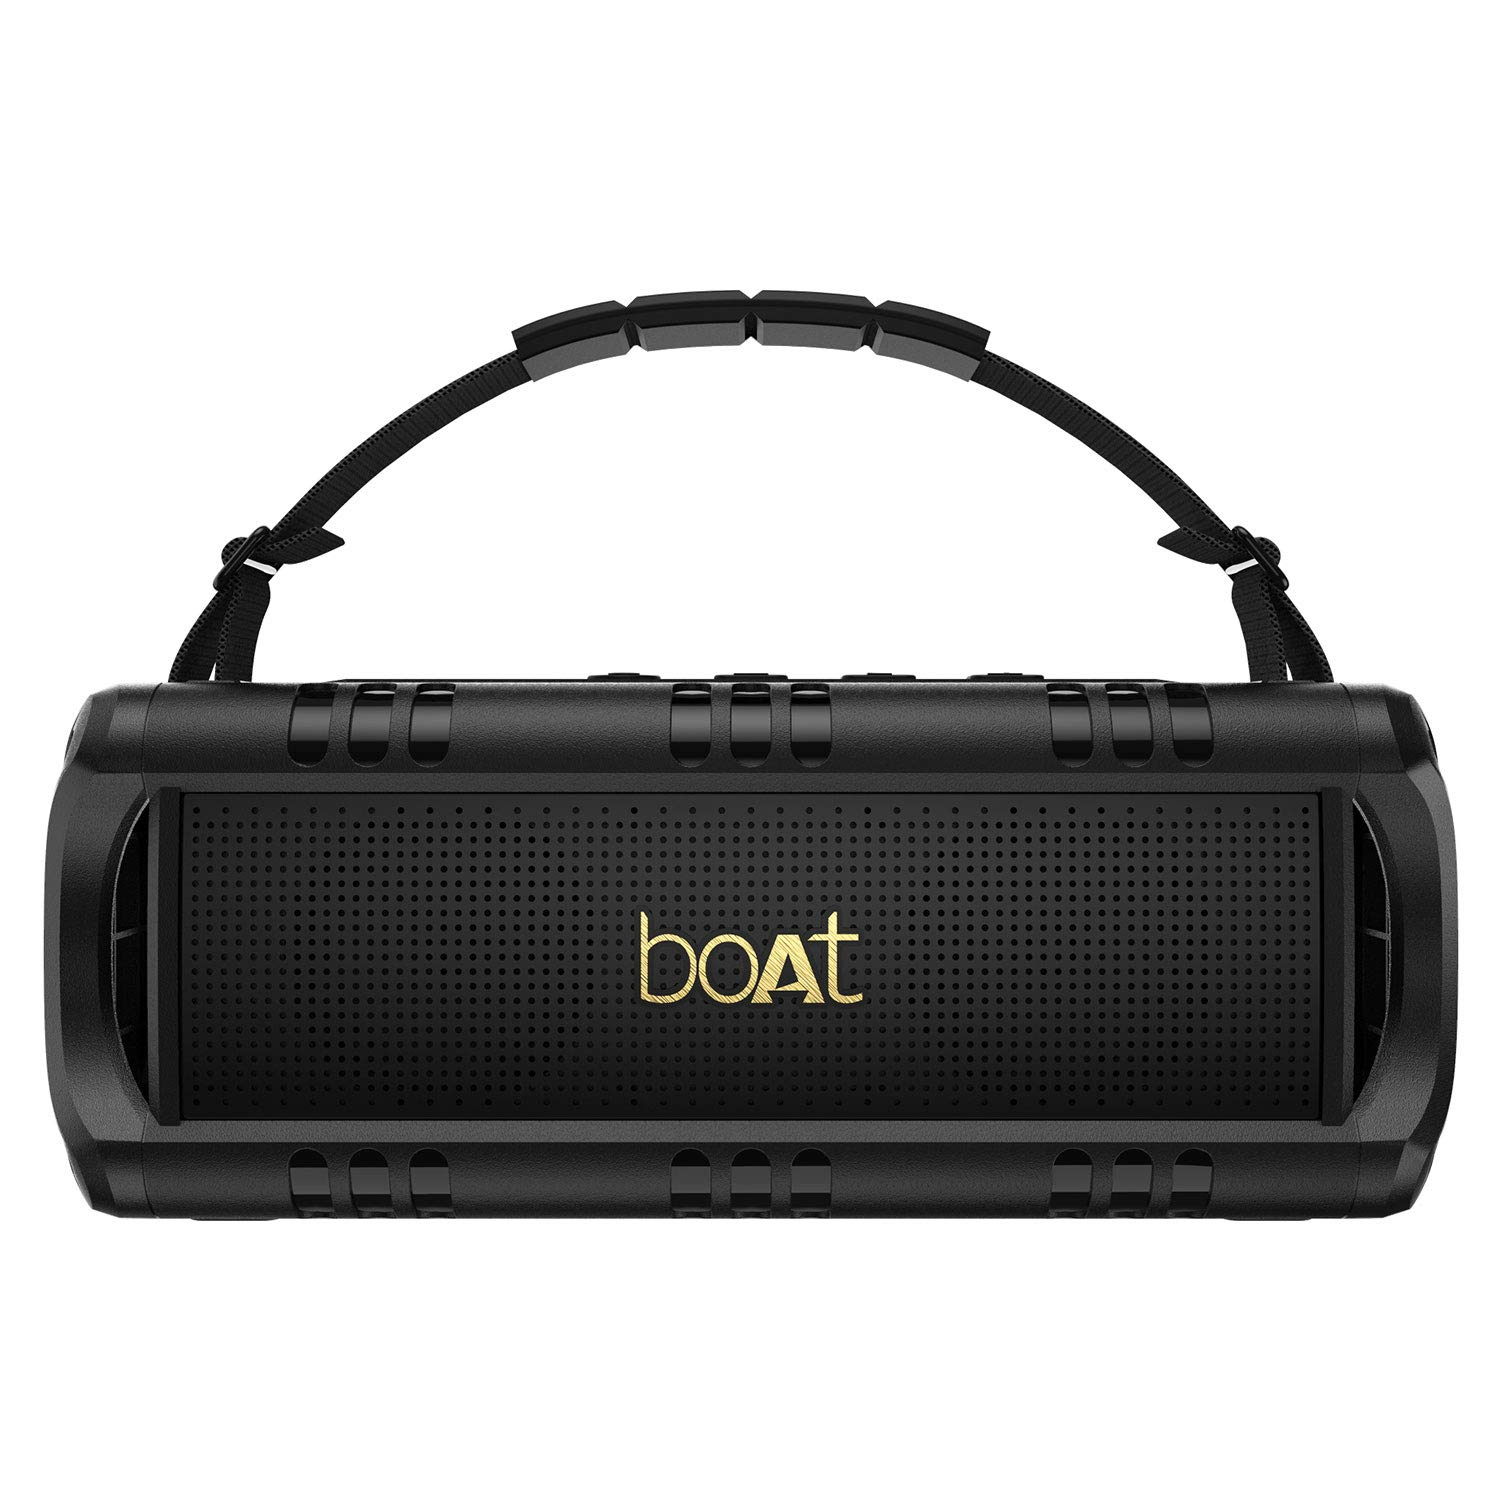 boAt Stone 1400 Mini Portable Wireless Speaker (Active Black)